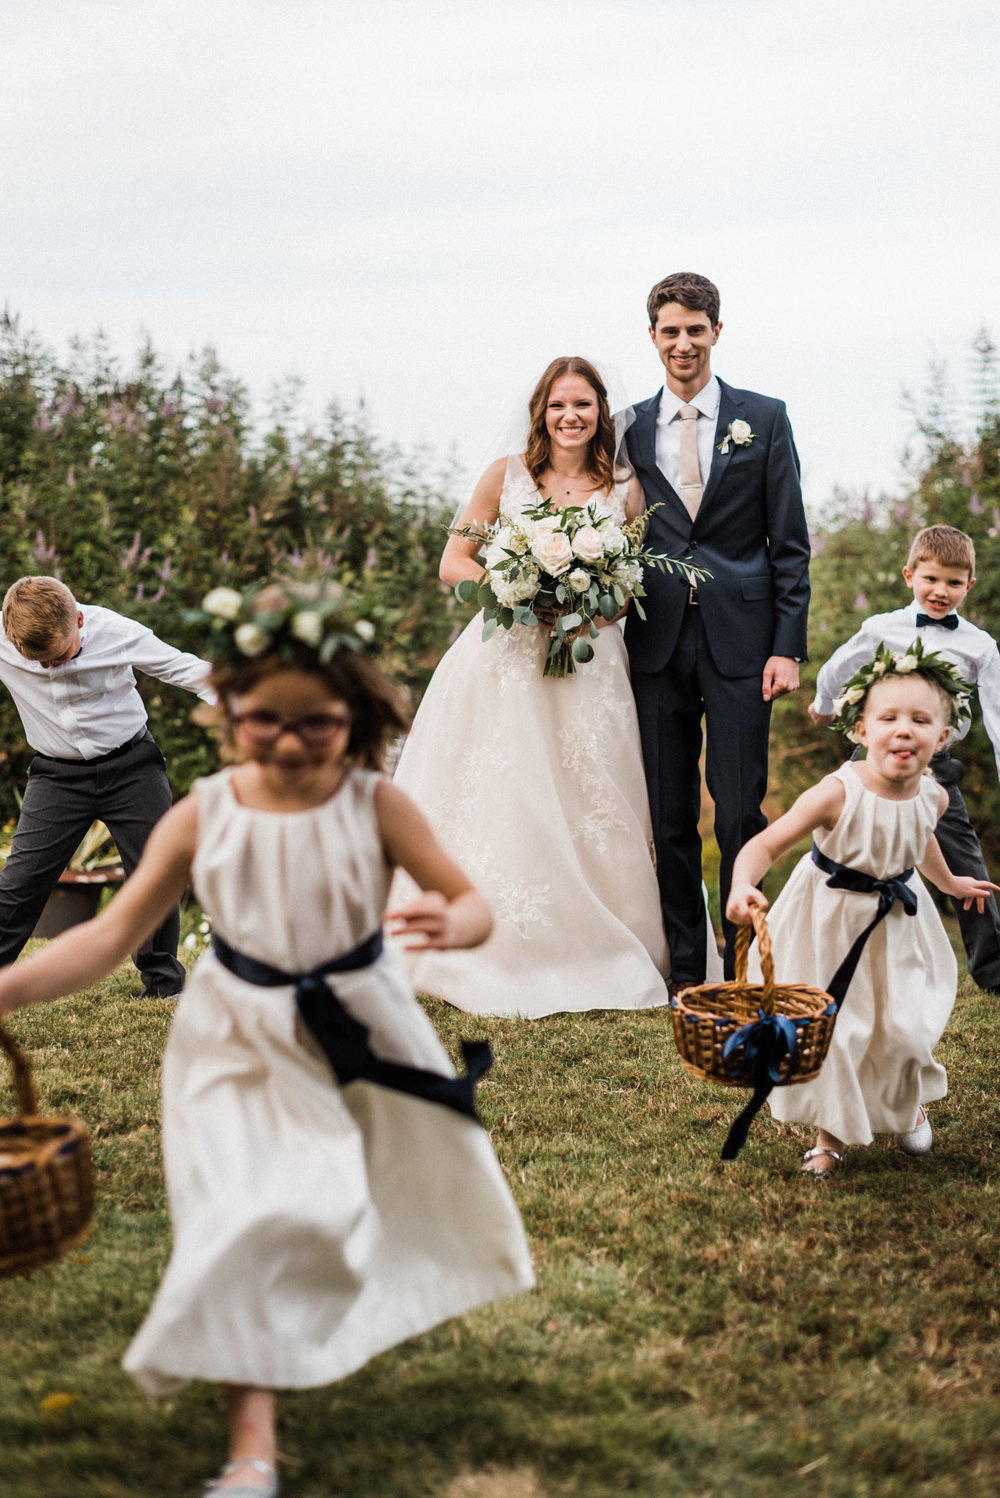 Tanner Burge Photography - Moss Mountain Farms Wedding with Sarah & Colin // Flower Girls and Ring Bearers